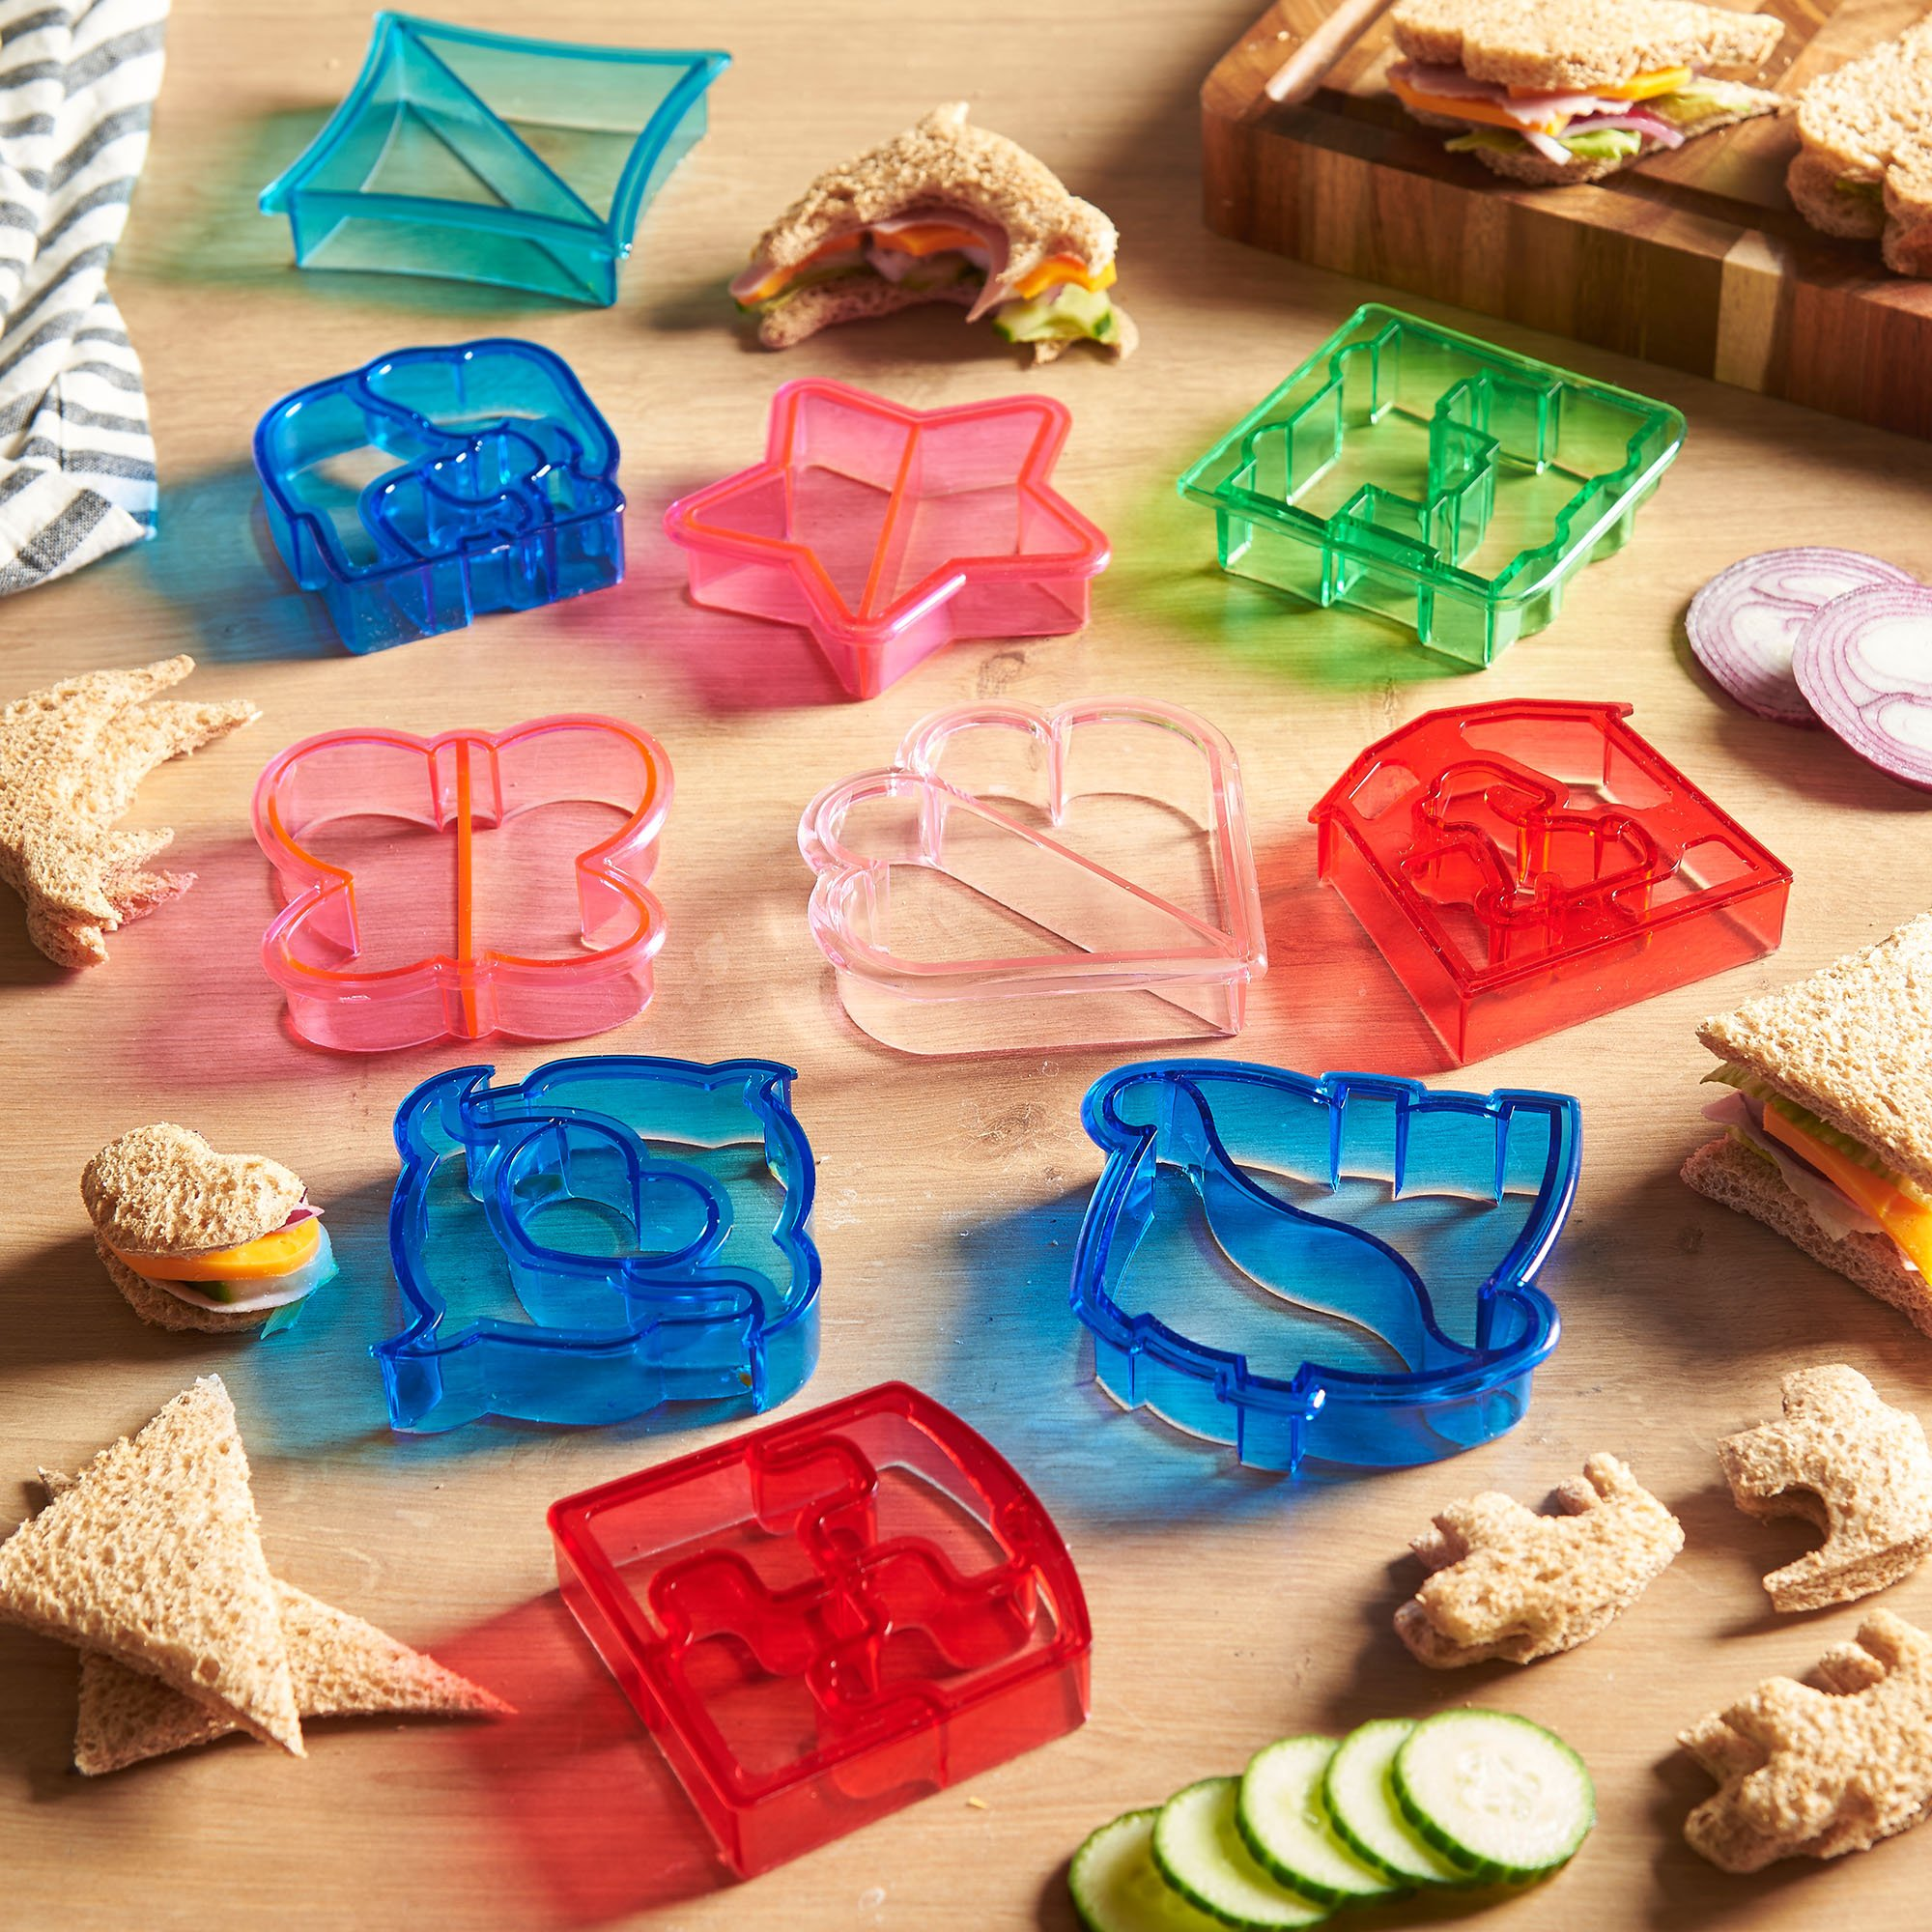 VonShef 15 Piece Sandwich and Vegetable Cutter Set – Novelty Plastic Cookie Cutters & Stainless Steel Shapes, BPA Free, 10 x Crust Cutters, 5 x Veggie/Fruit Cutters by VonShef (Image #1)